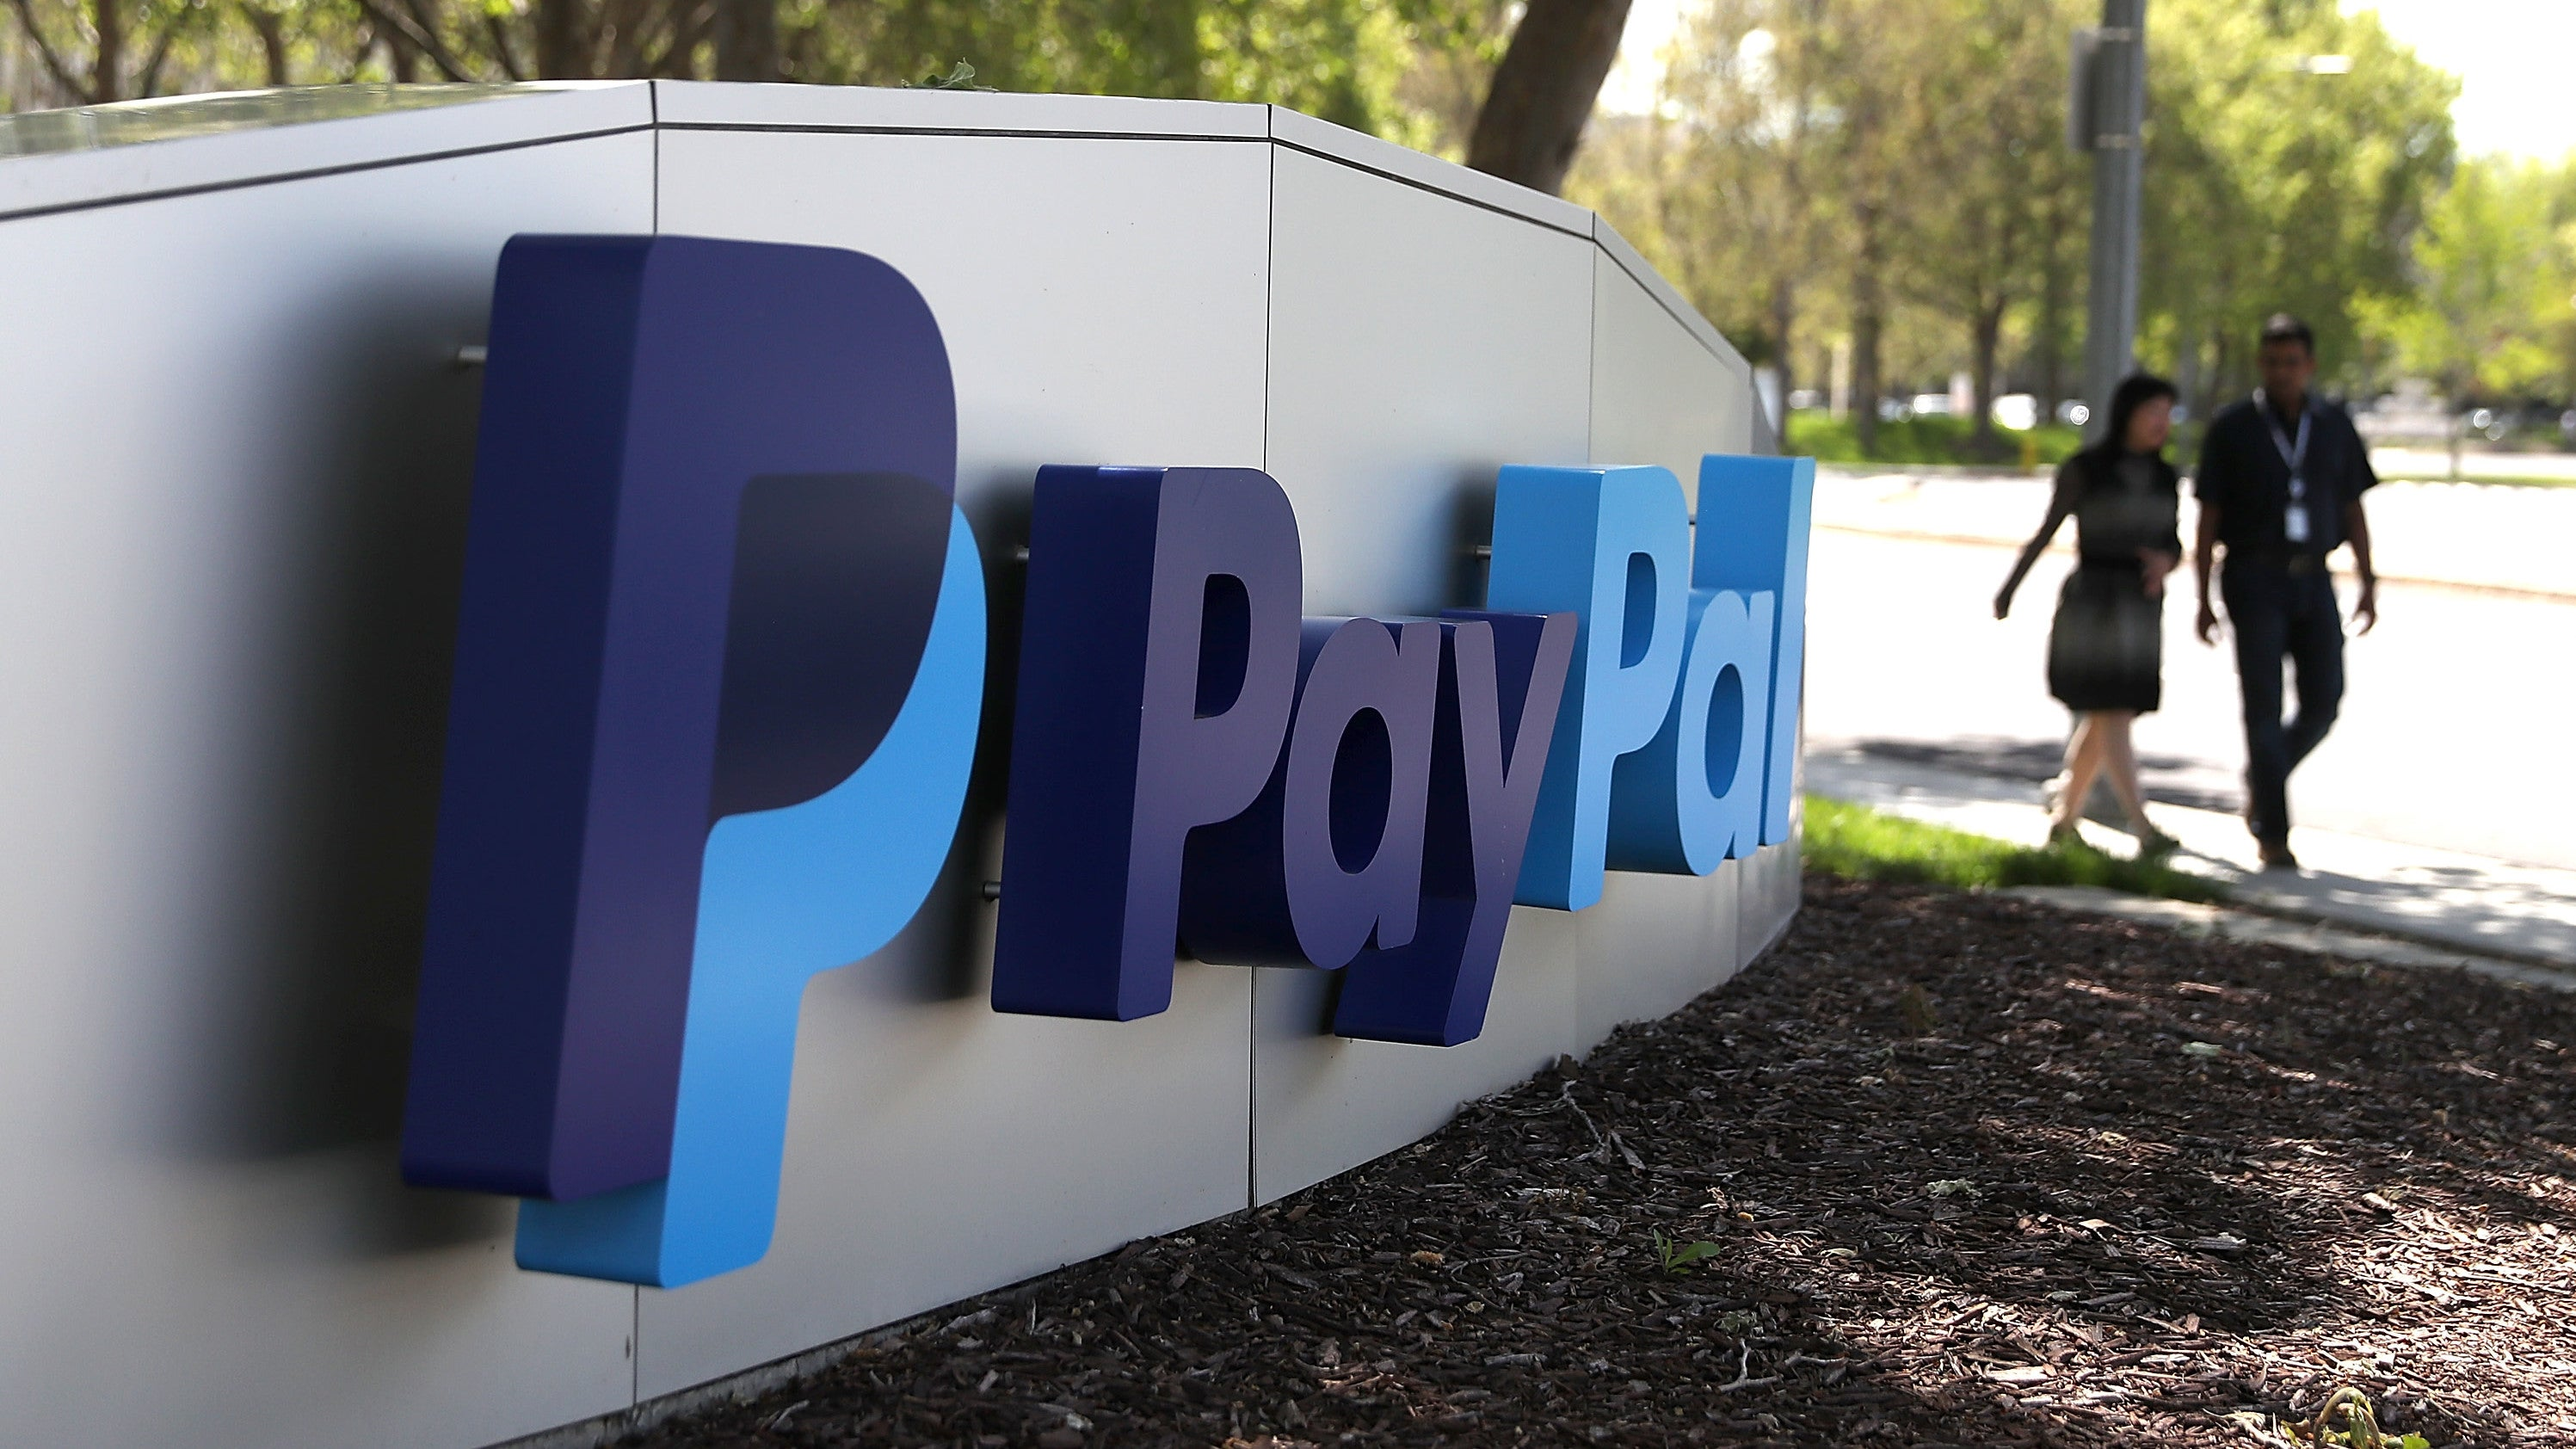 Ex-PayPal Employee Fights To Have Her Gender Discrimination Dispute Heard In Court